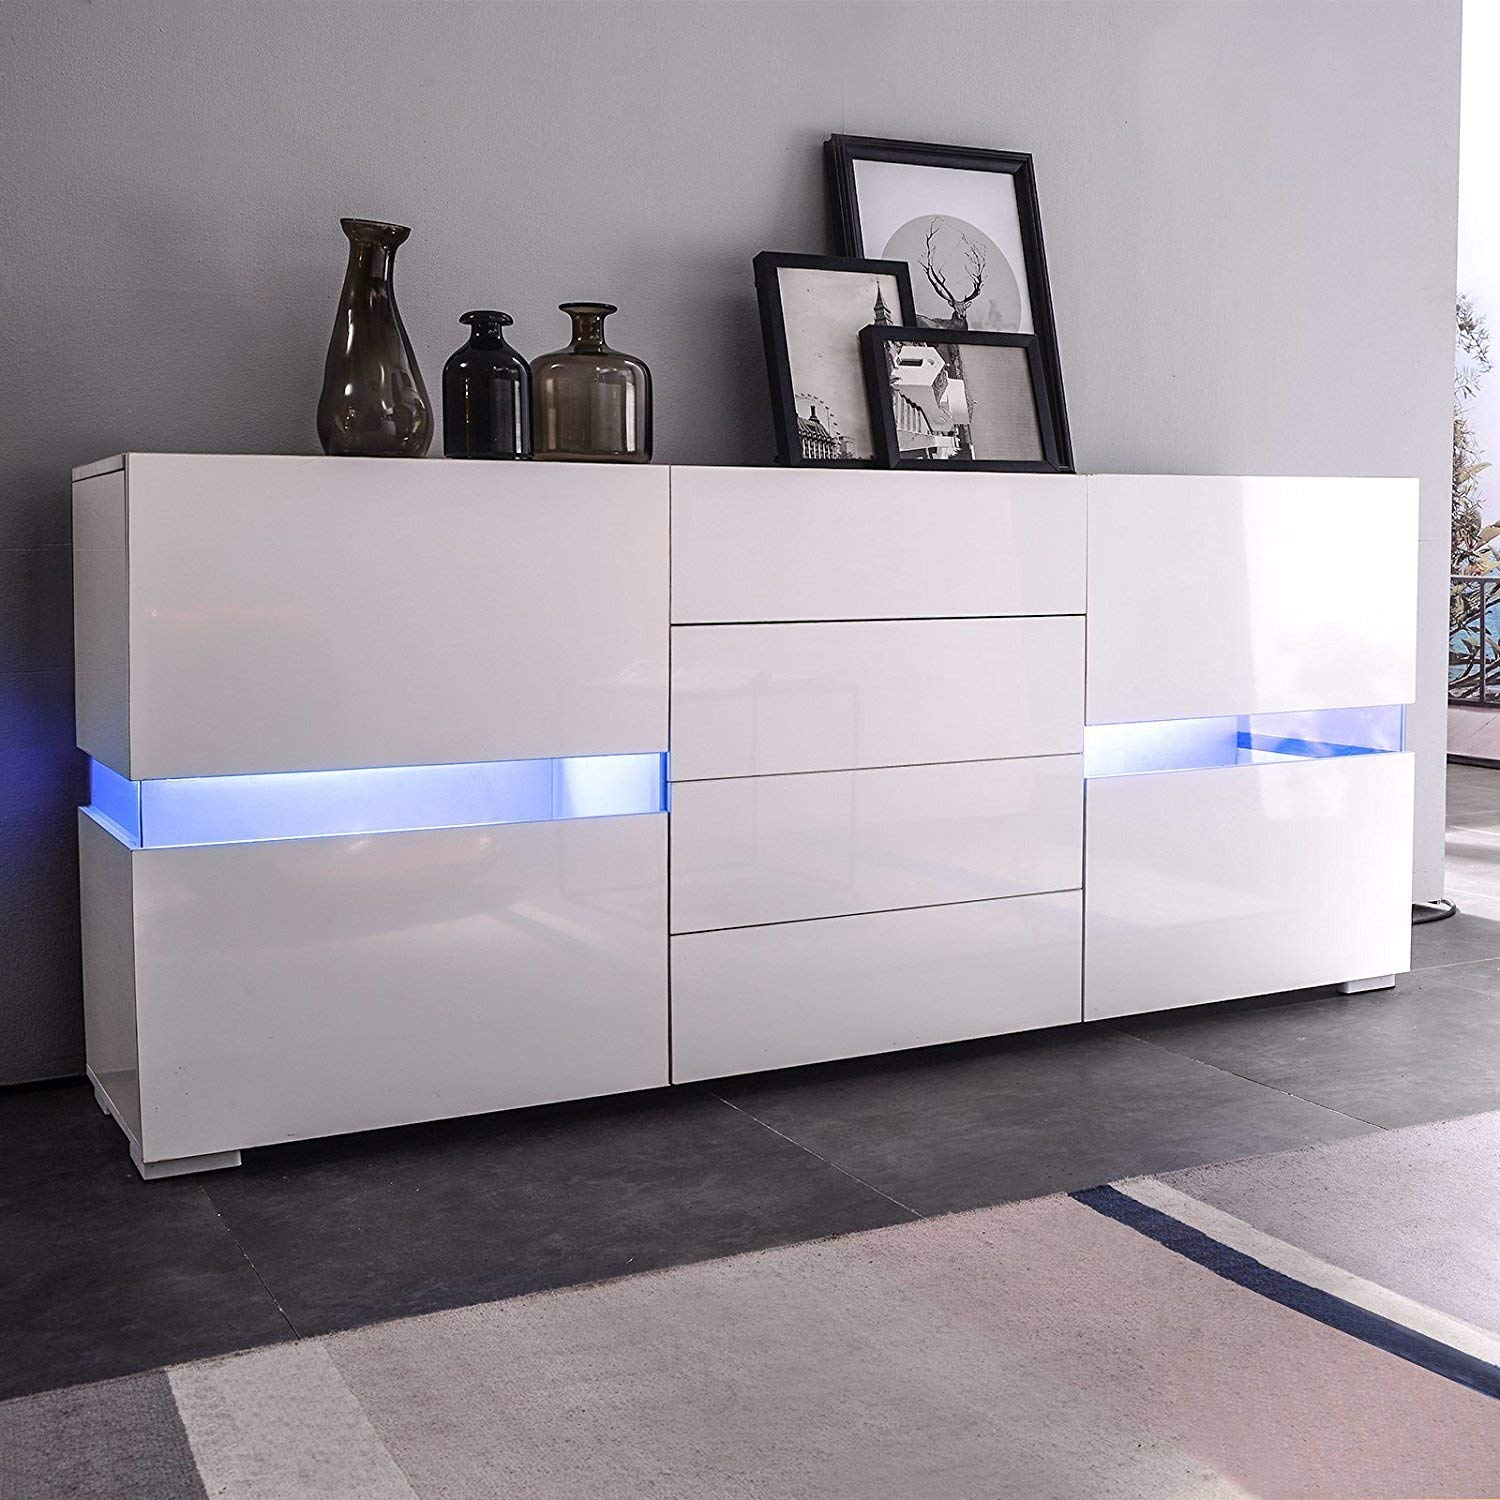 Product Image Sideboard Buffet Cabinet Kitchen Dining Room Furniture Server  Table 2 Doors U0026 4 Drawers Storage,